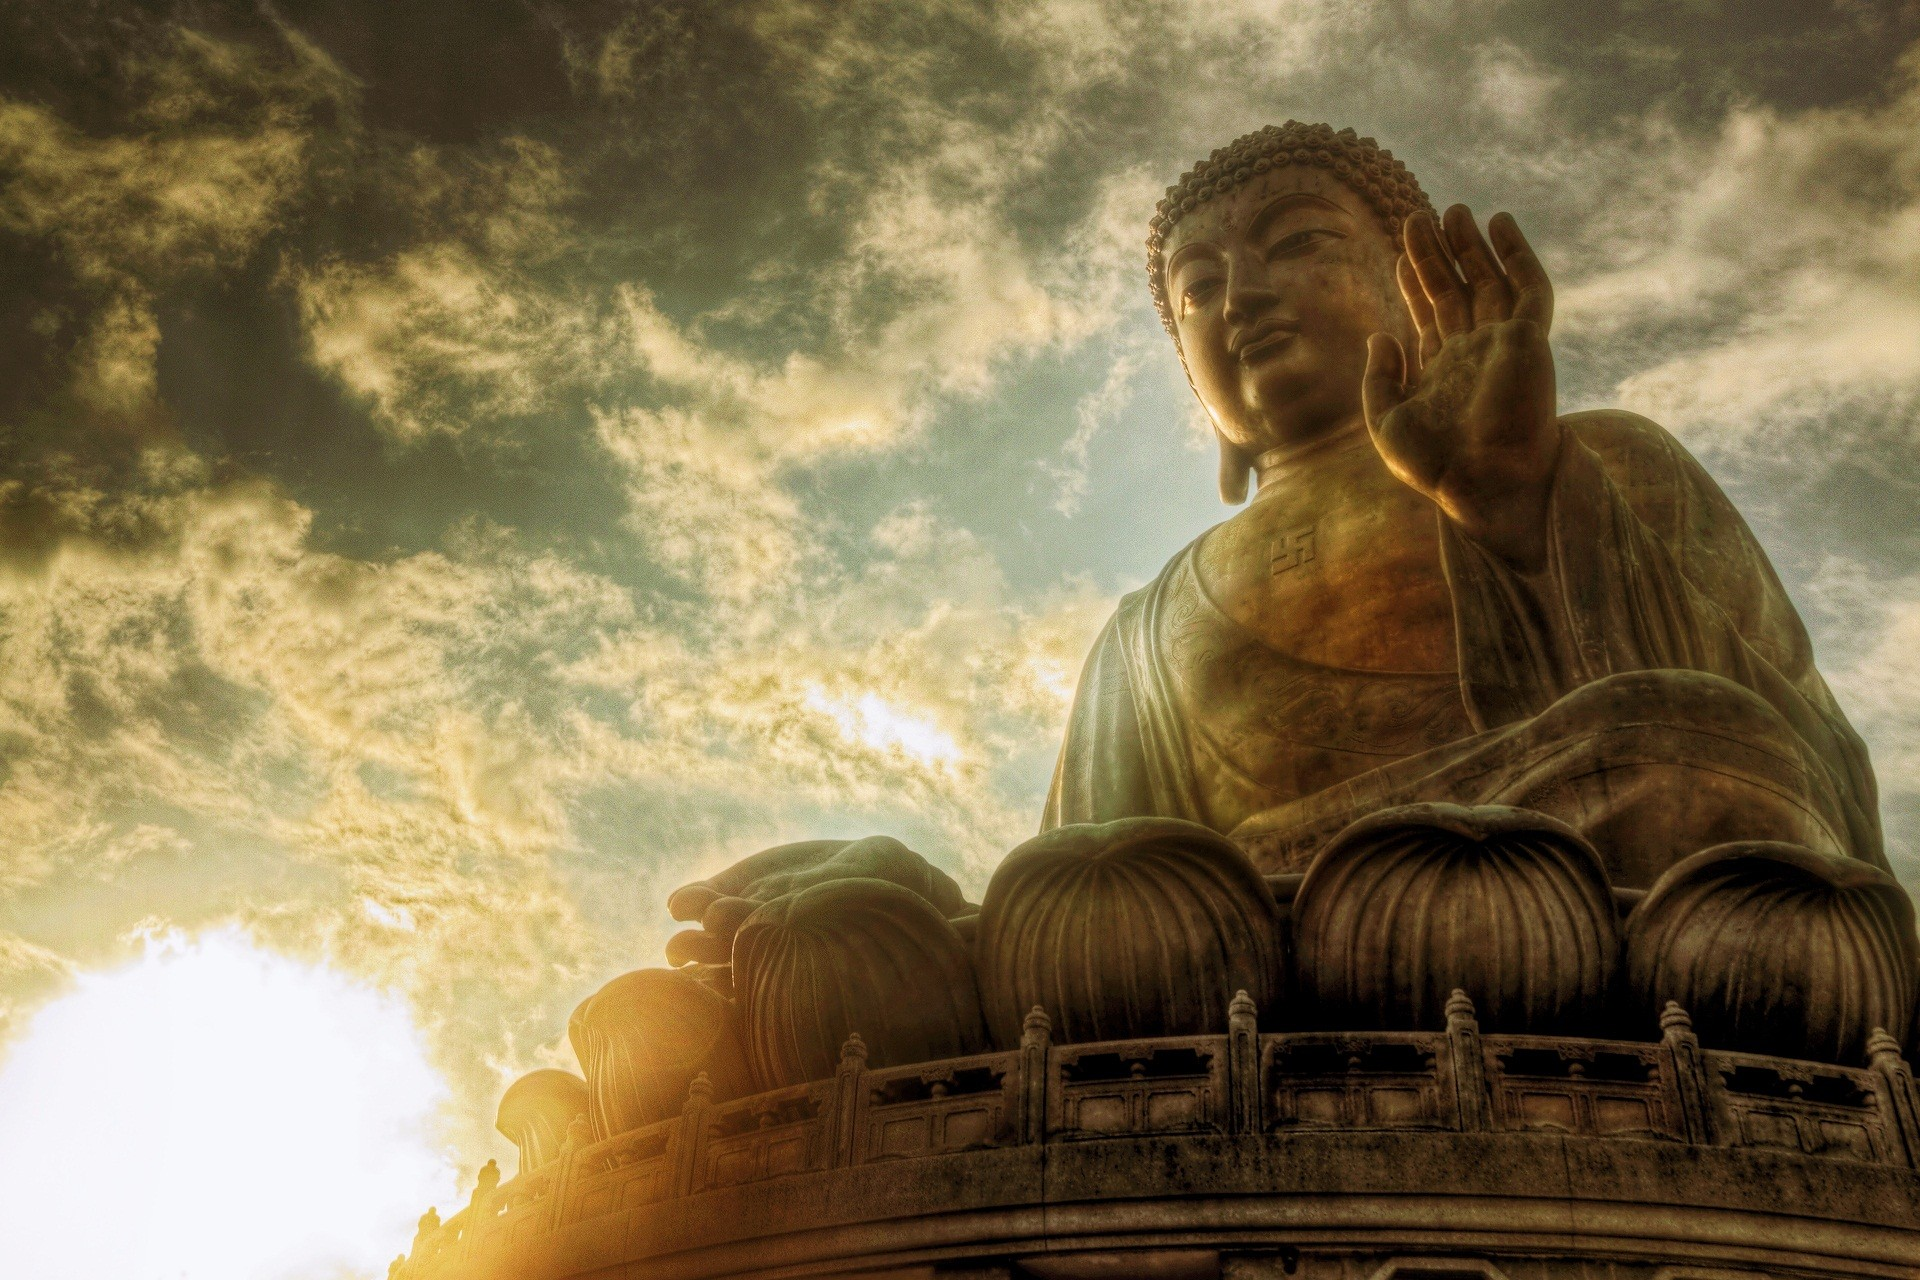 Buddha wallpaper ·① Download free HD wallpapers for ...